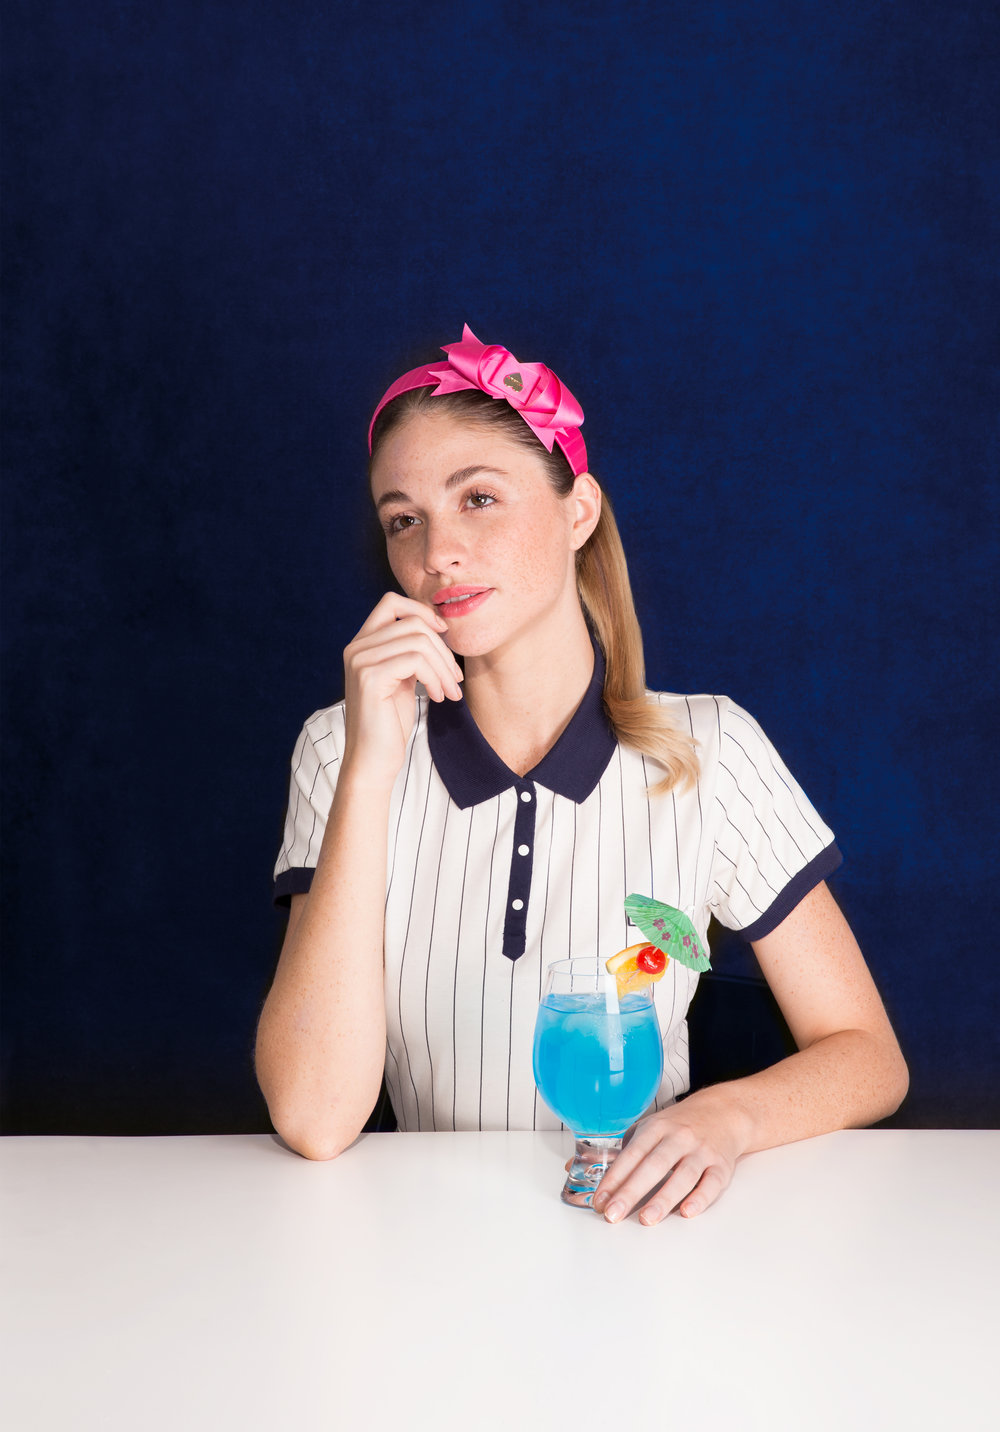 Polo: Fila, Headband: Luella